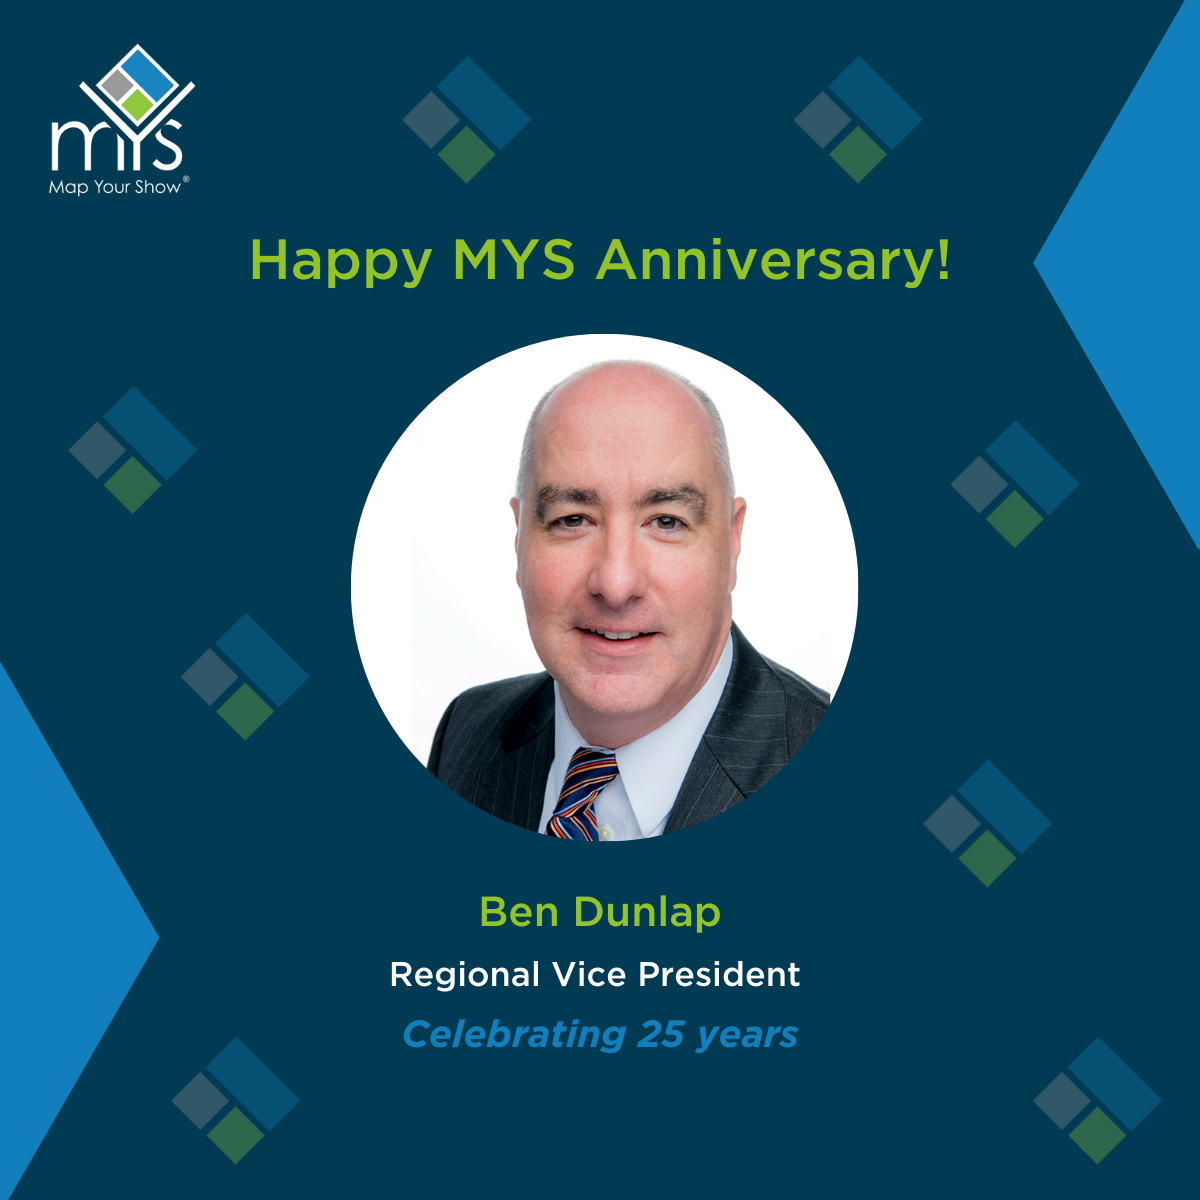 Congratulations to Ben Dunlap on 25 years with GBM/MYS!